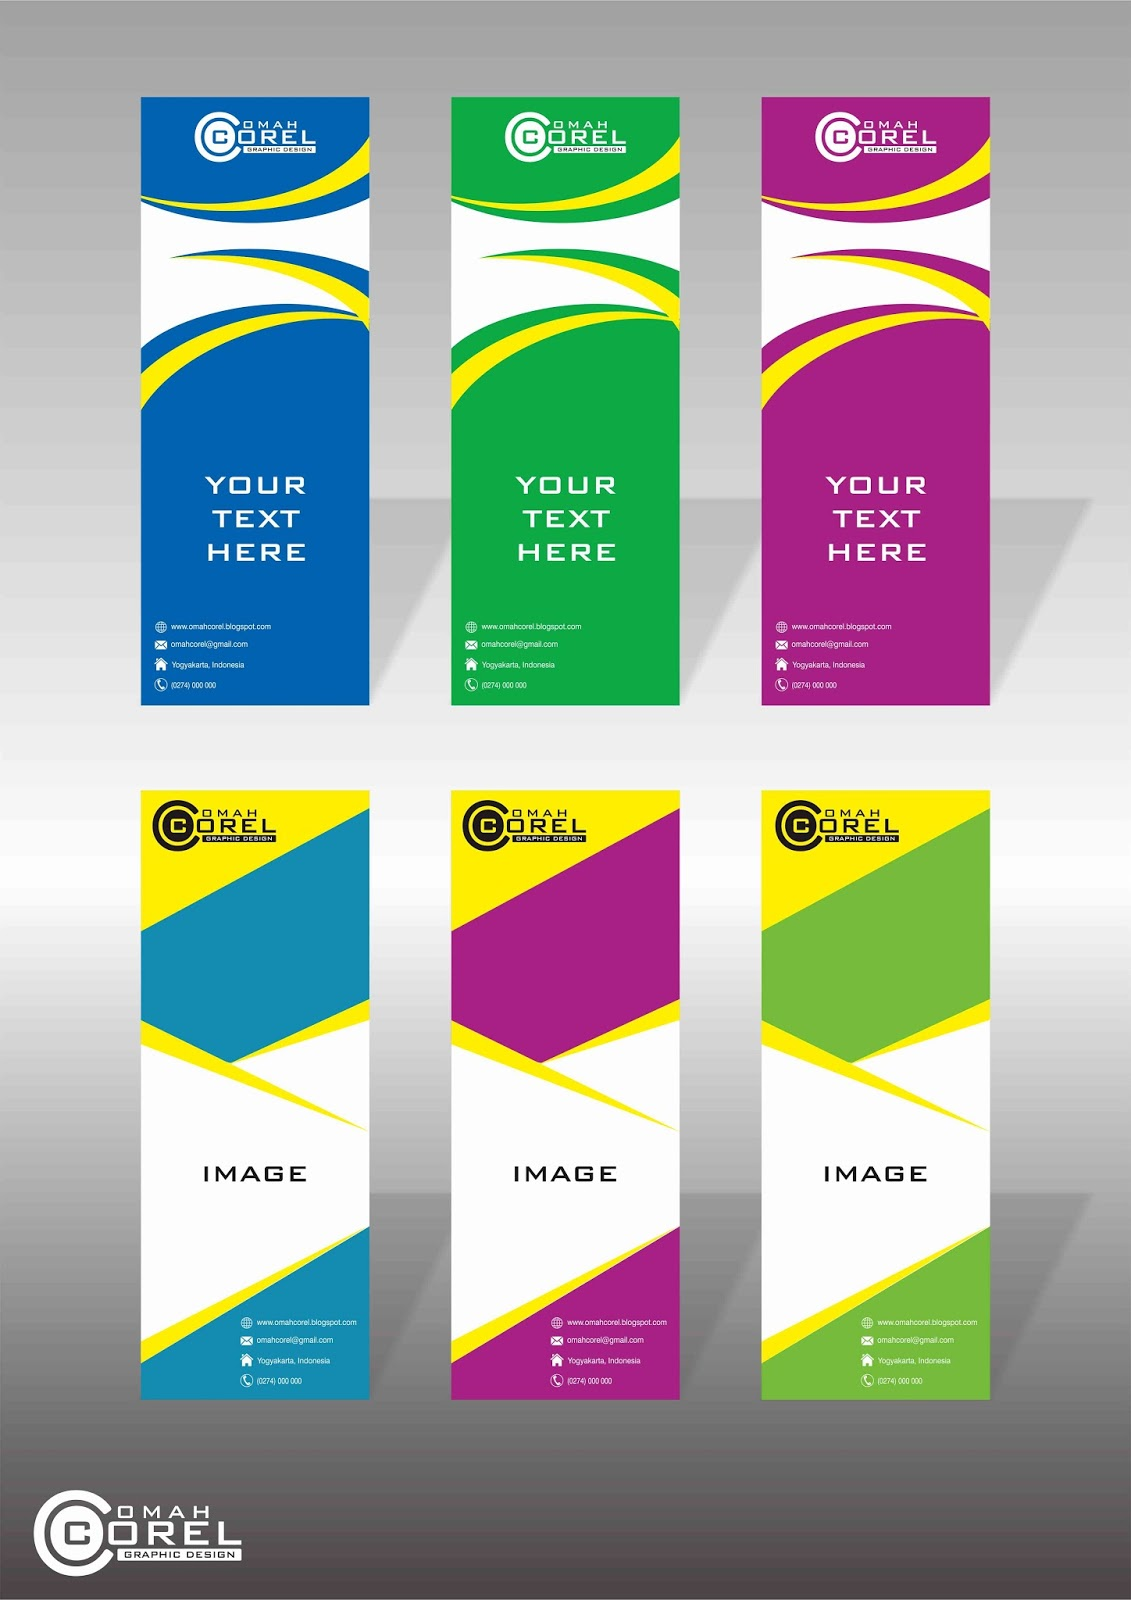 12 X banners background design template CDR file download